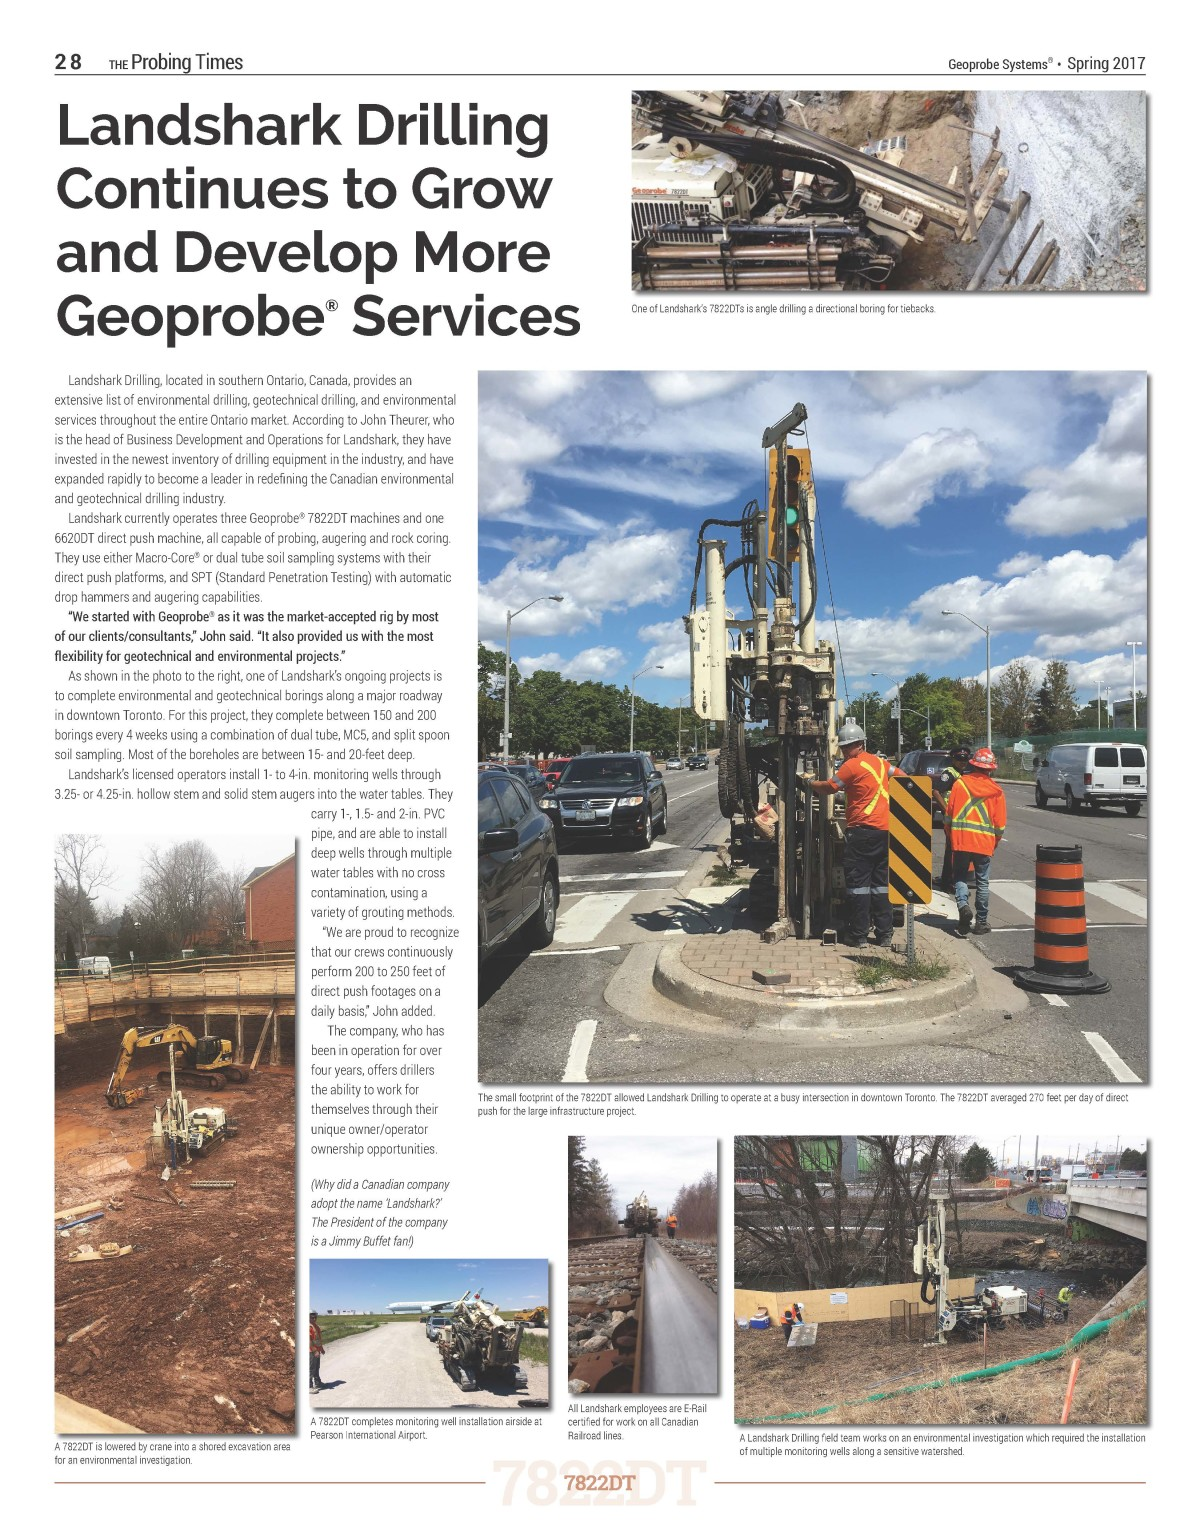 Geoprobe Systems Article